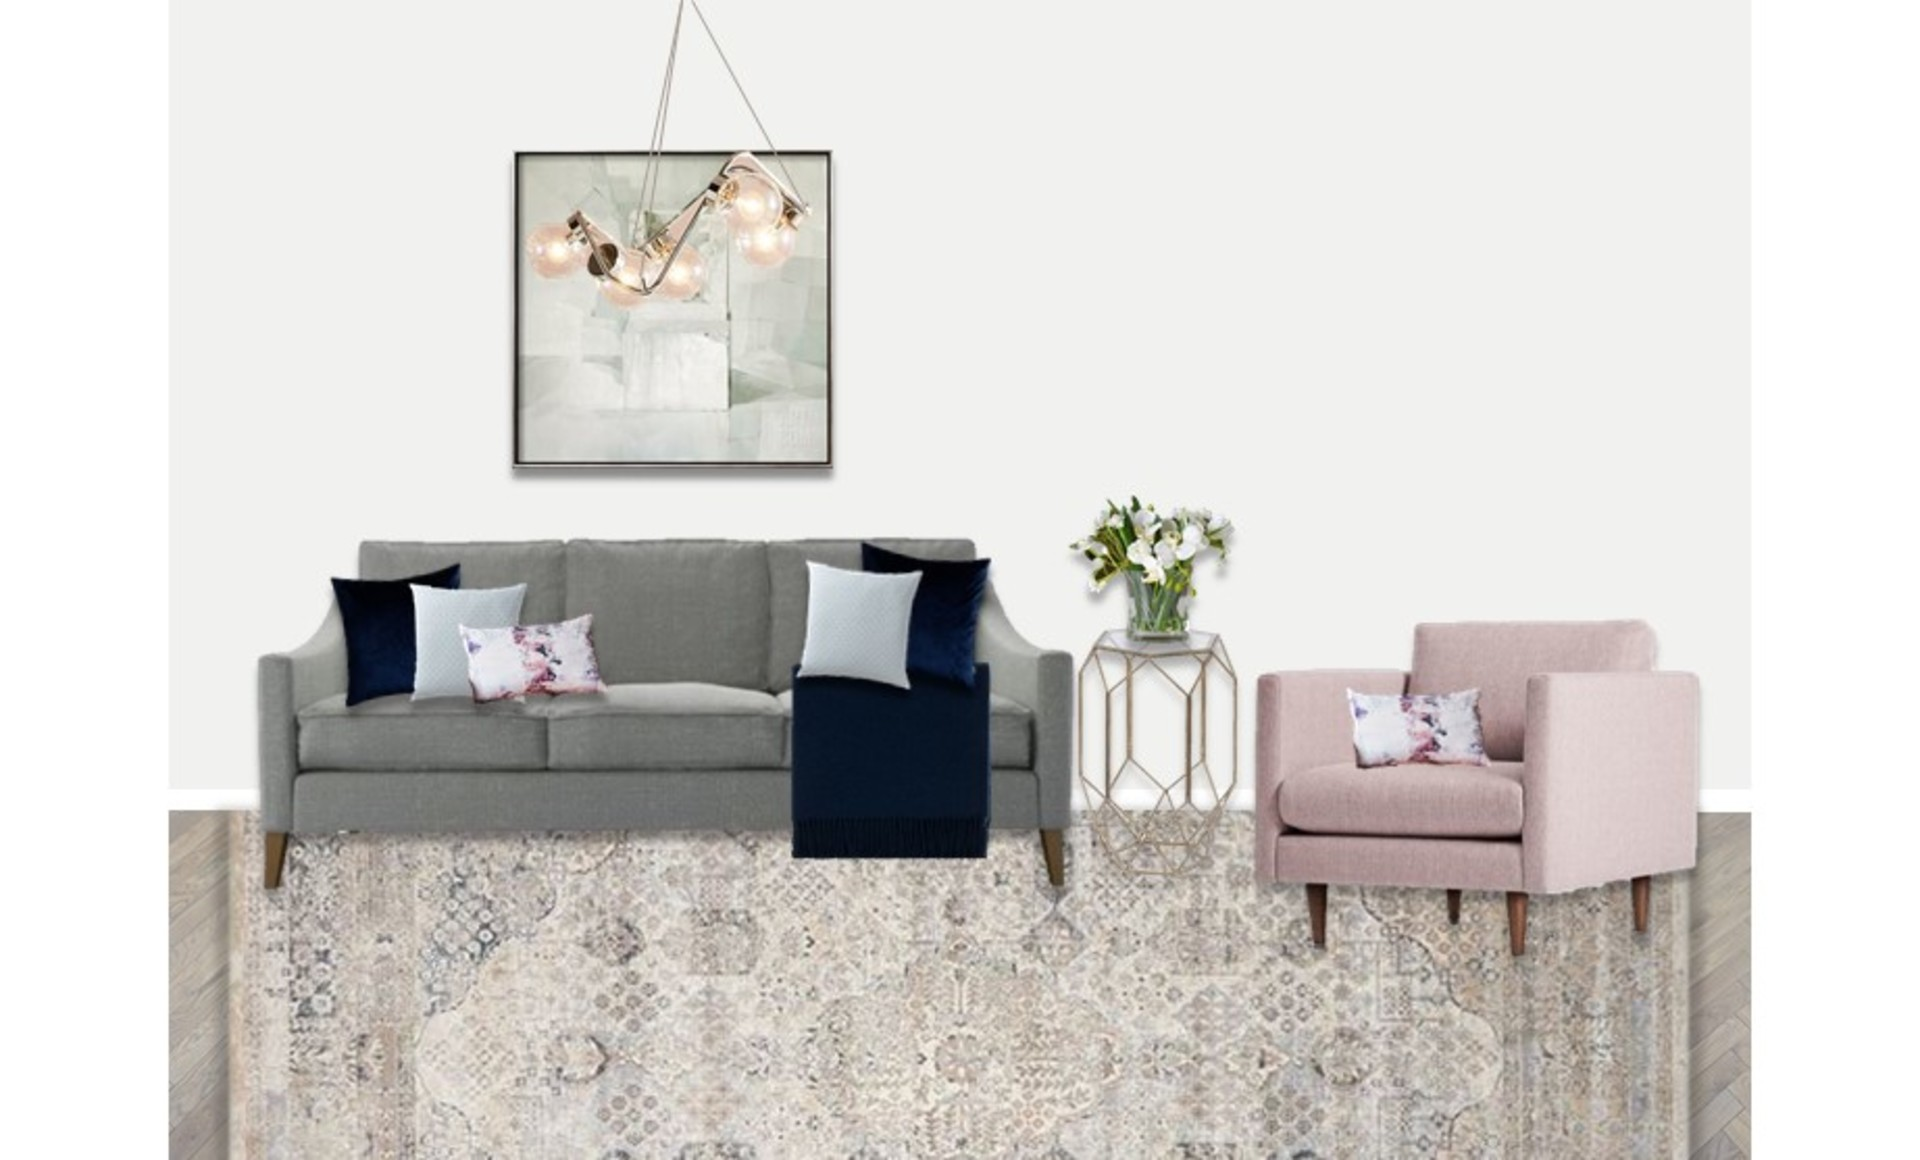 Faded Persion rug with blush armchair and grey sofa and brass chandelier lighting with elegant furniture